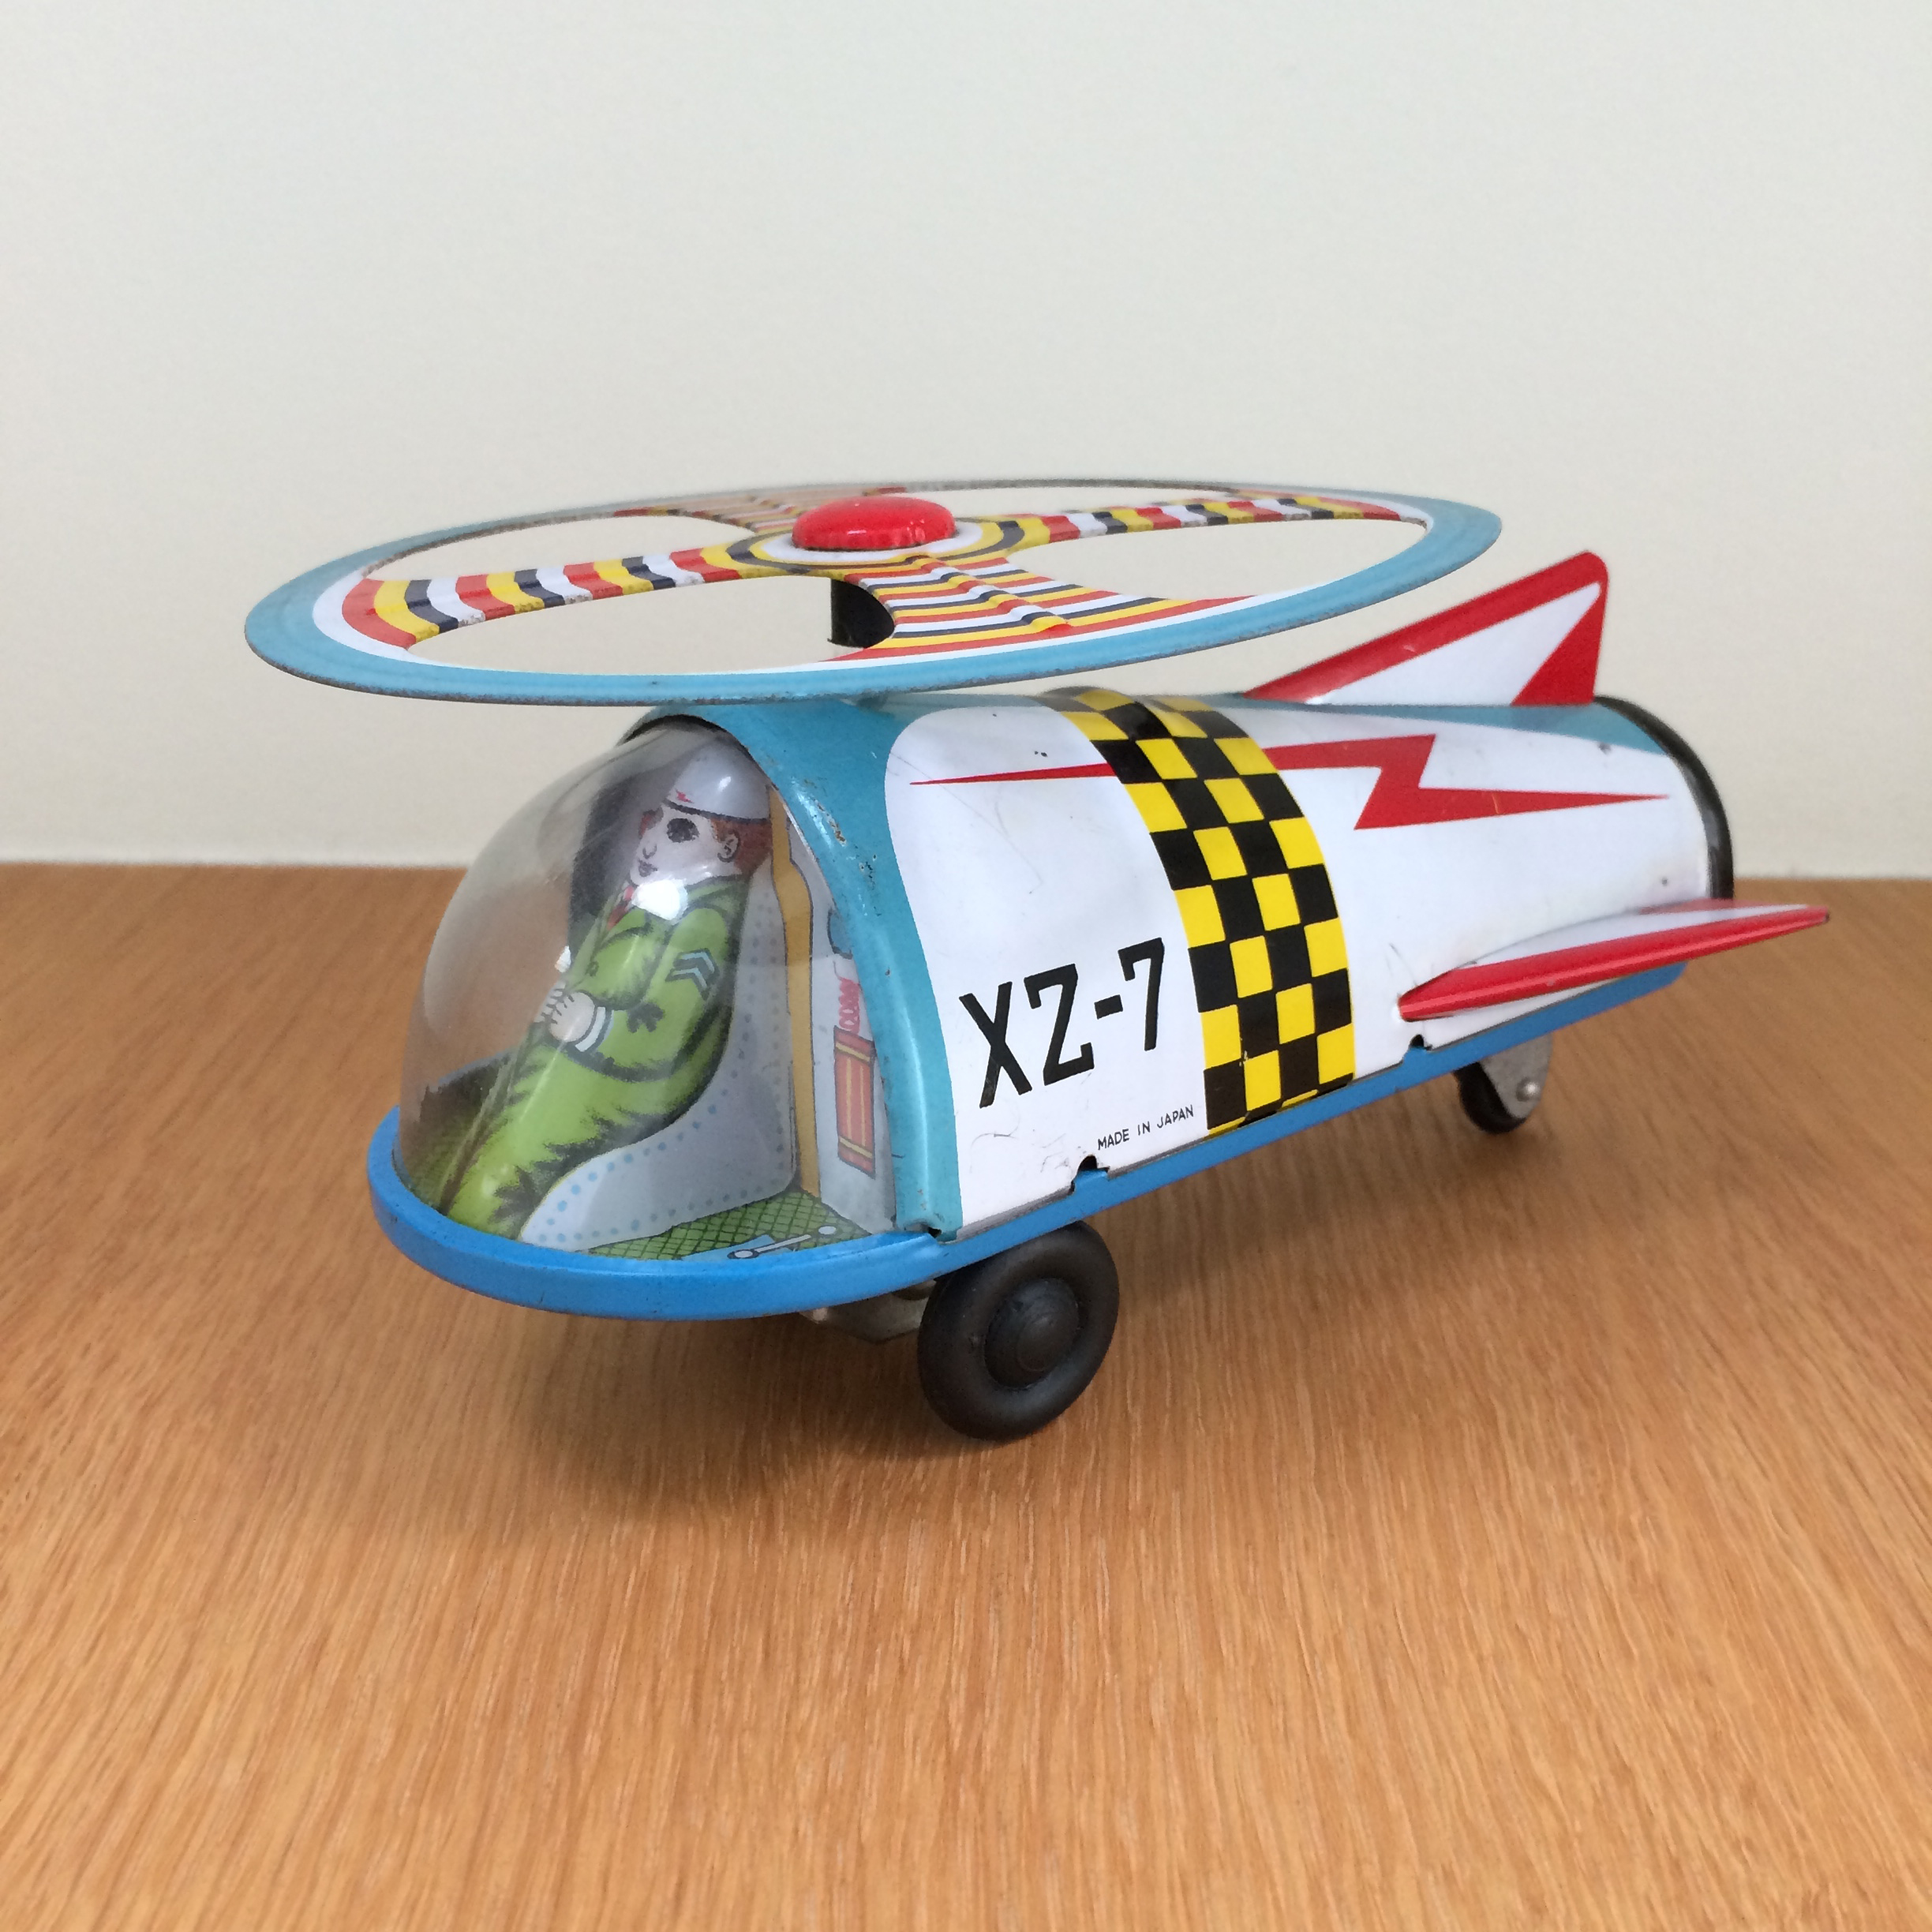 XZ-7 Space Helicopter - 1960's   ATC (Asahi Toy Co) - Made in Japan